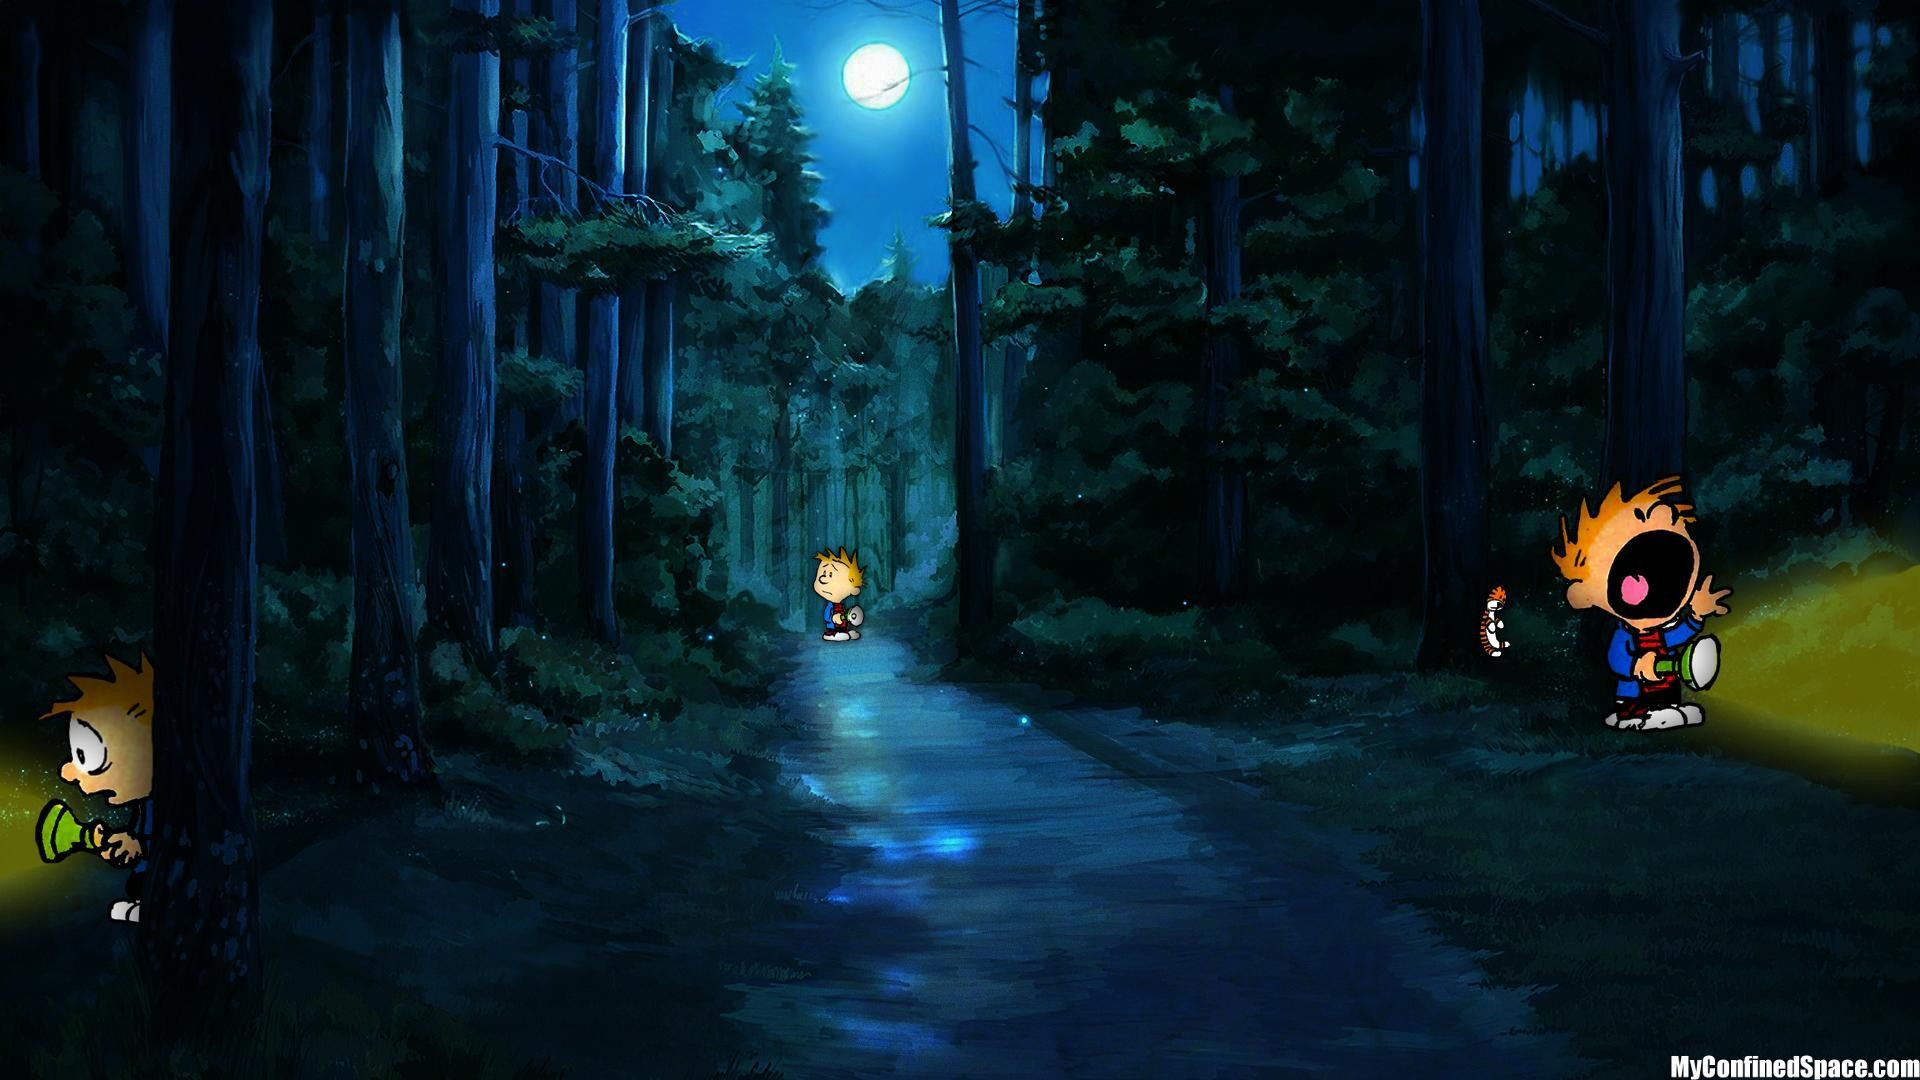 In the forests of the night book trailer software